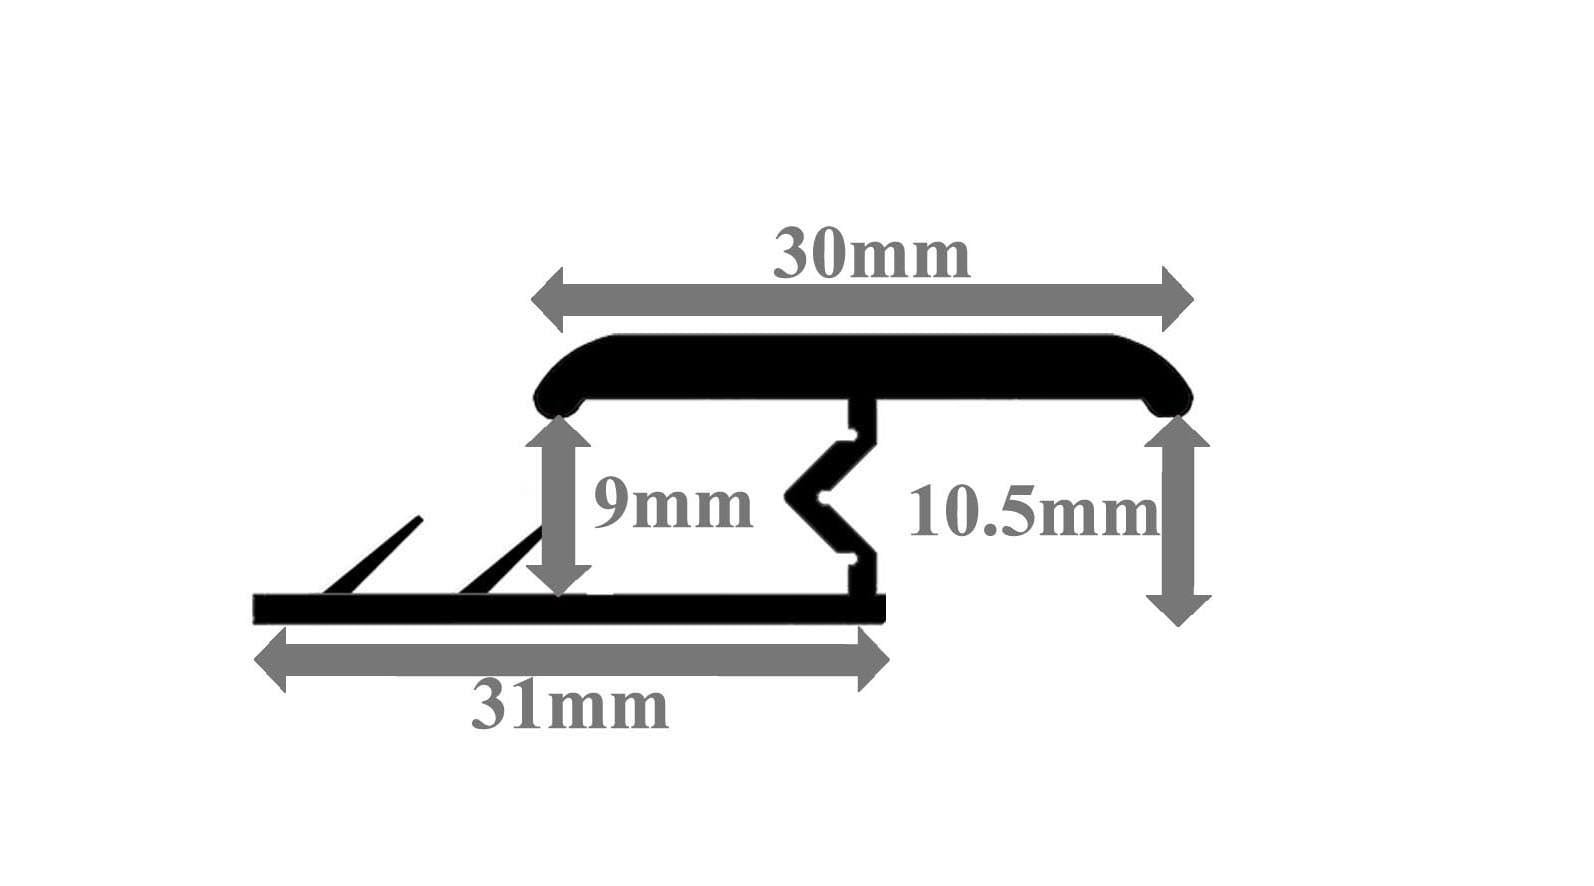 Premier Z transition strip diagram